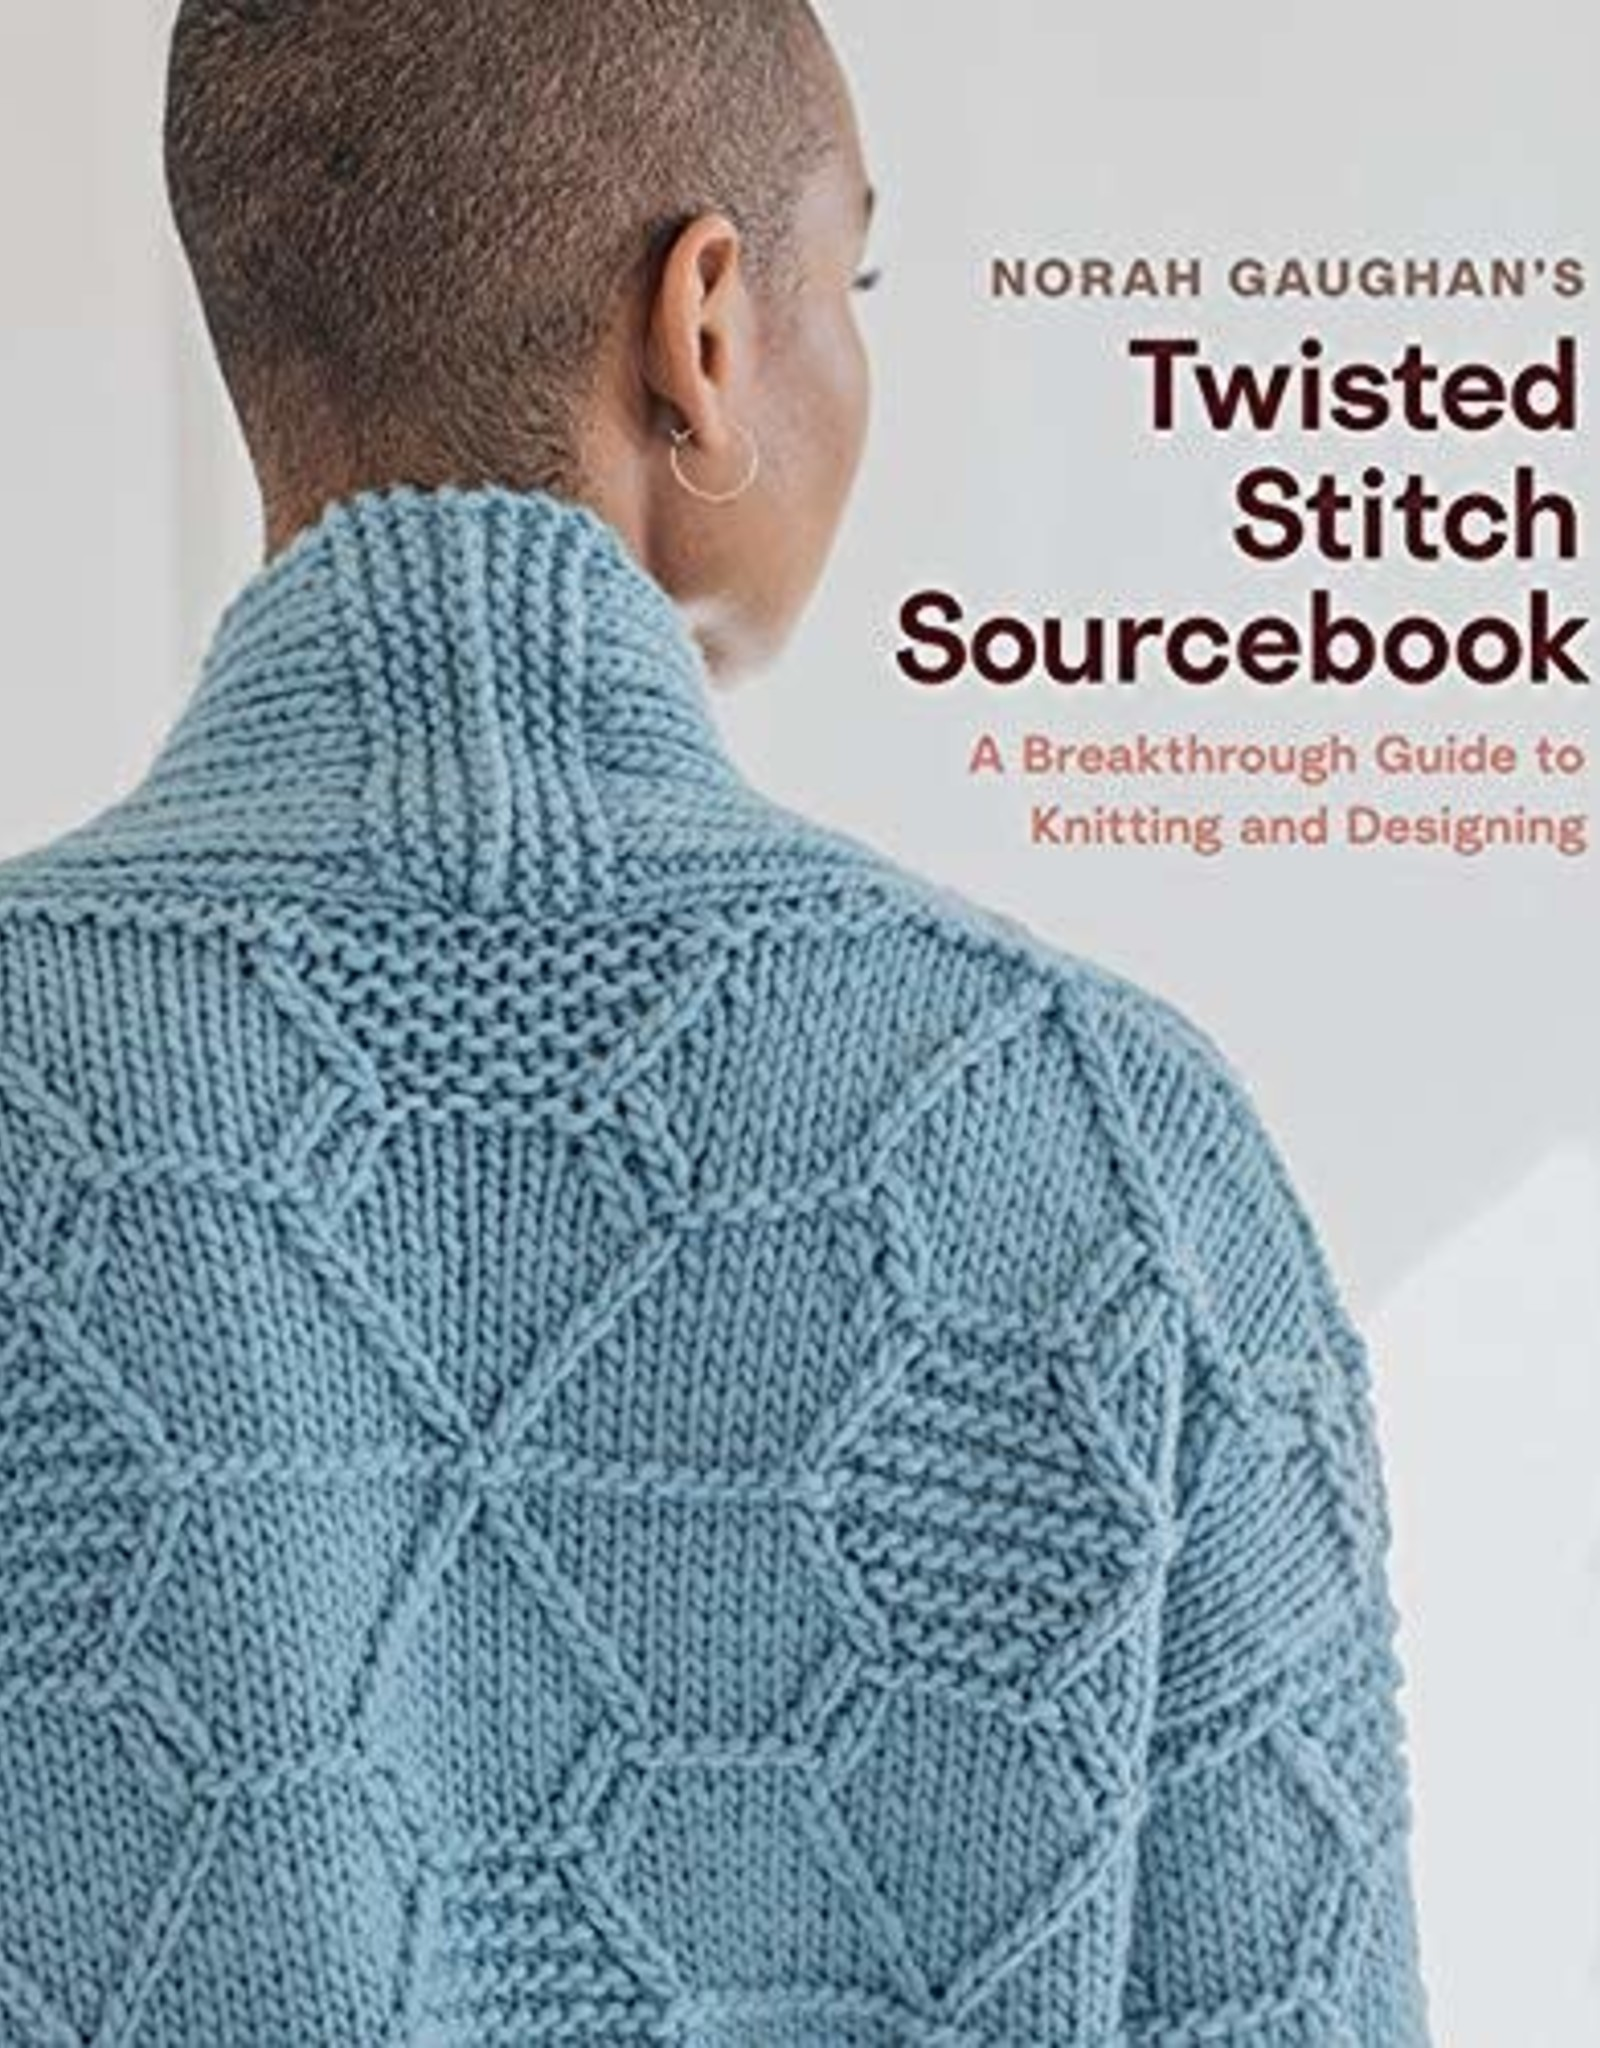 Hachette Twisted Stitch Sourcebook by Norah Gaughan